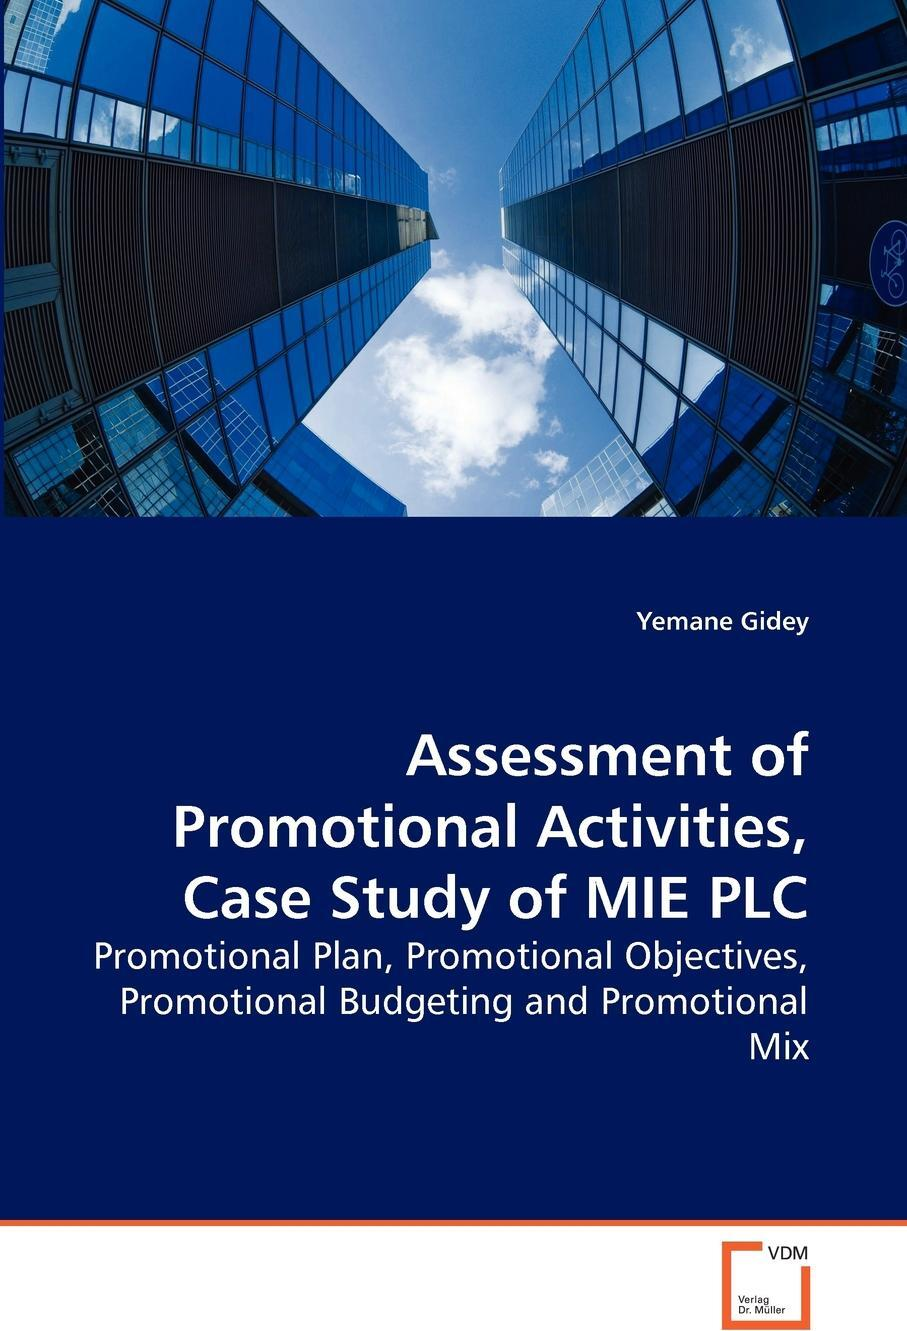 Assessment of Promotional Activities, Case Study of MIE PLC